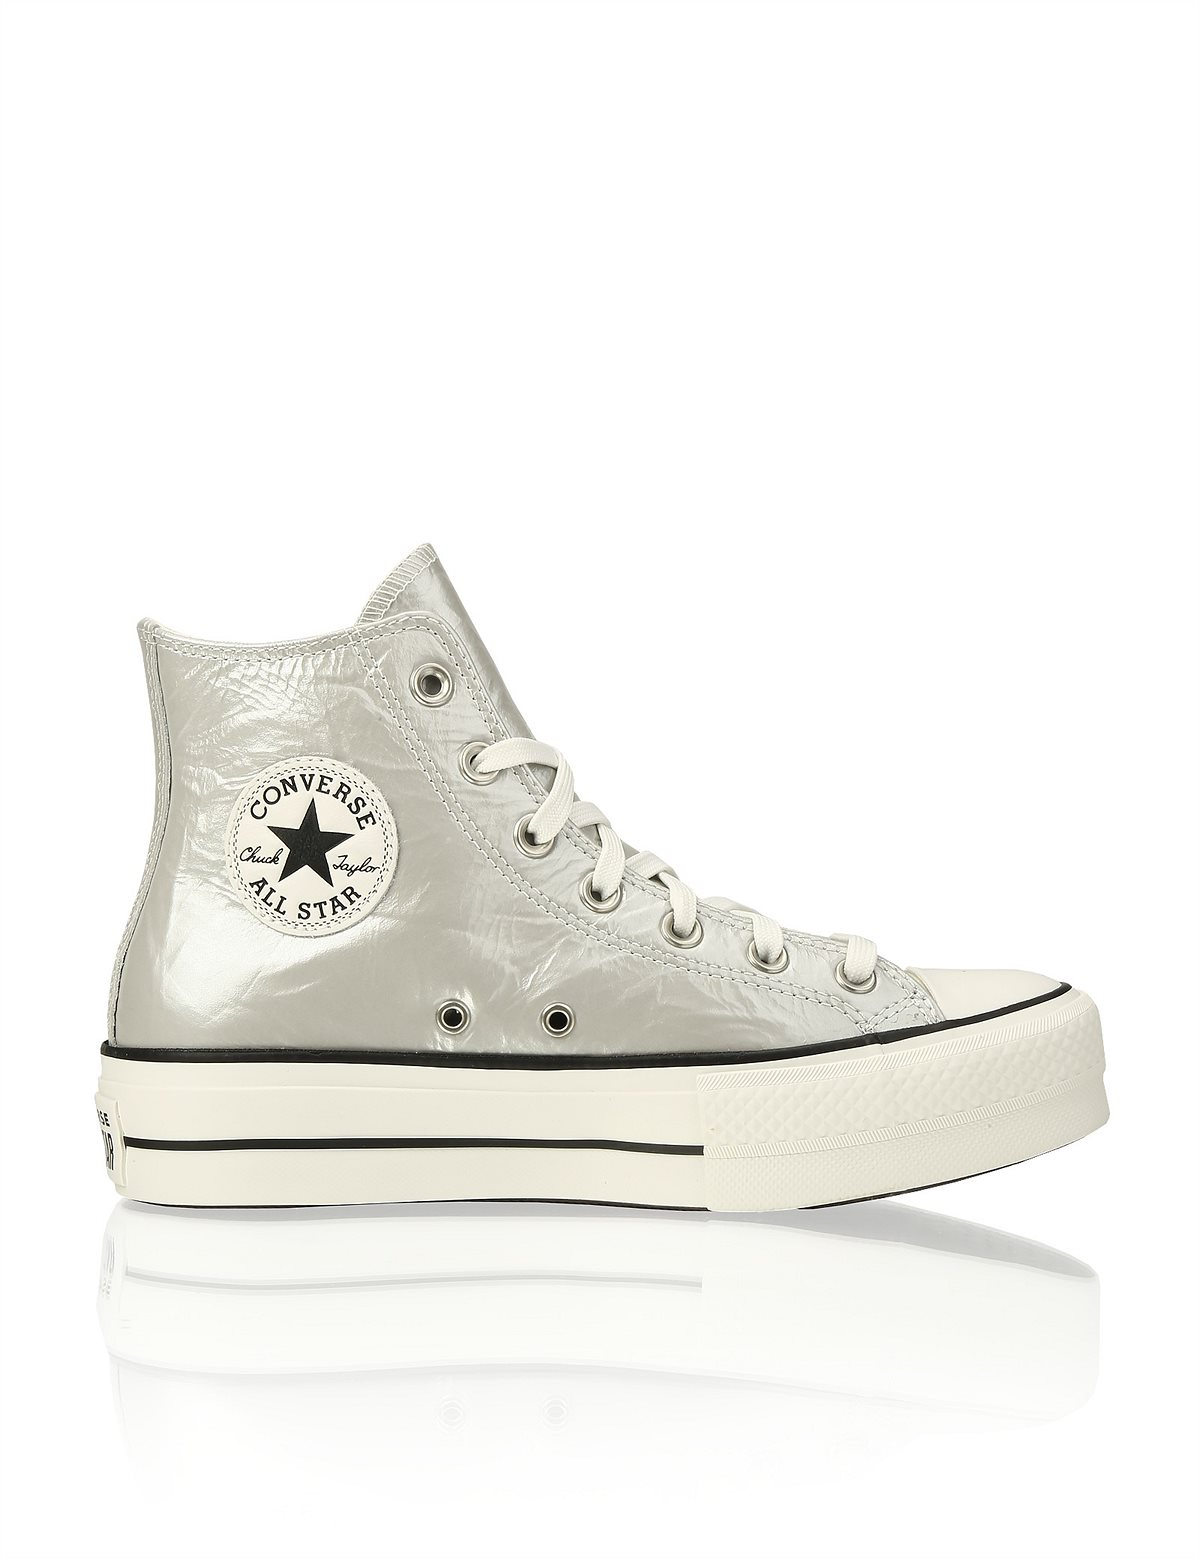 HUMANIC 24 Converse Sneaker Mid Cut EUR 99,95 1713512194